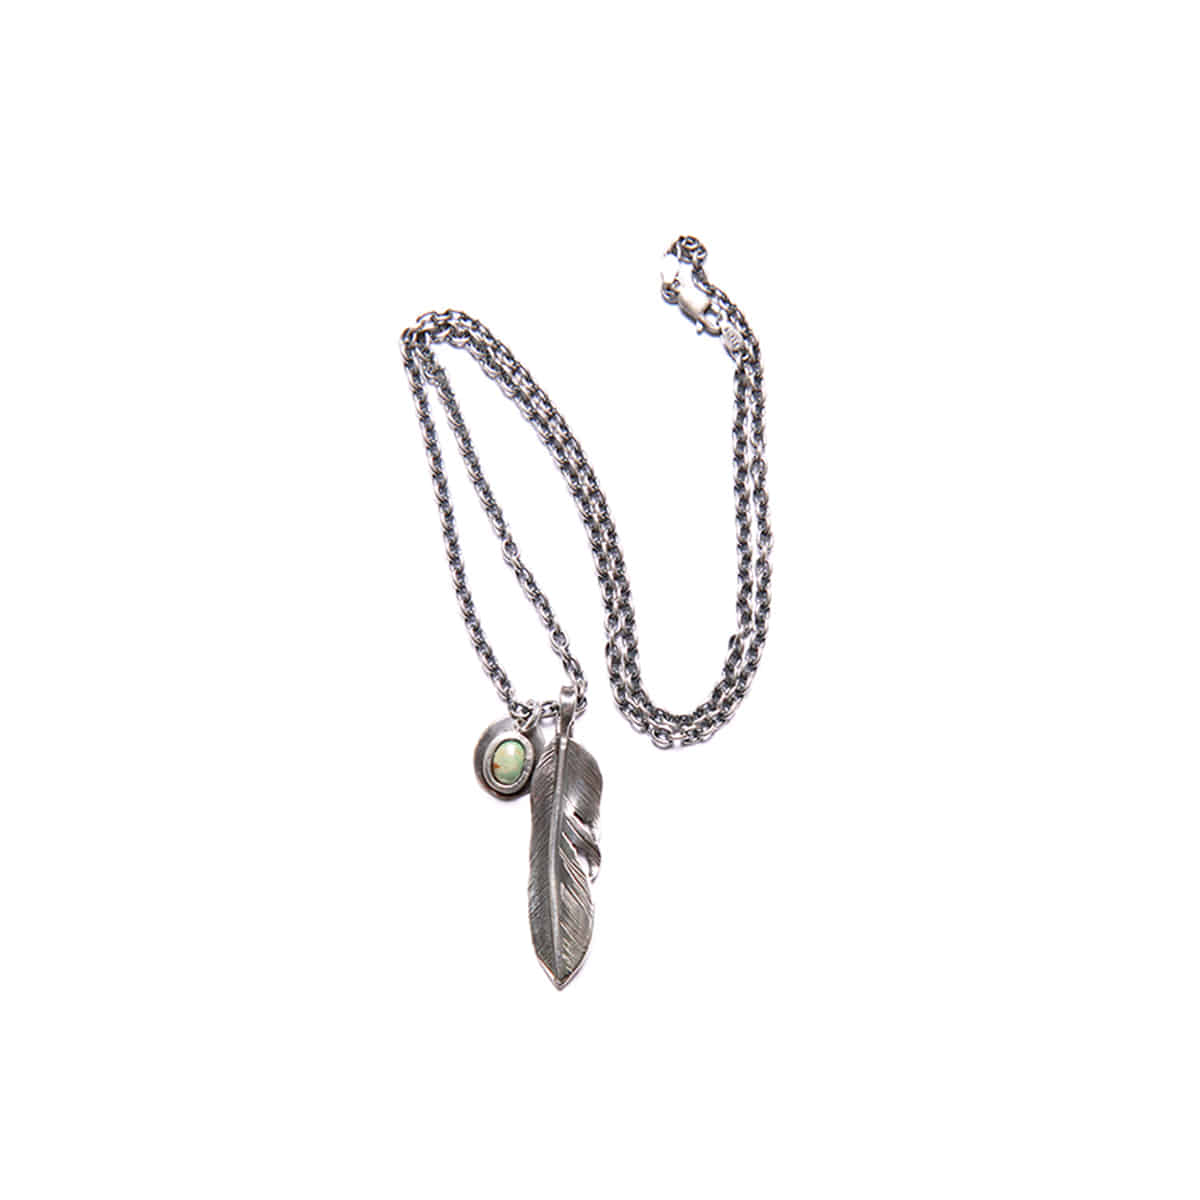 [NORTH WORKS] LIBERTY FEATHER PENDENT NECKLACE 'N-410'